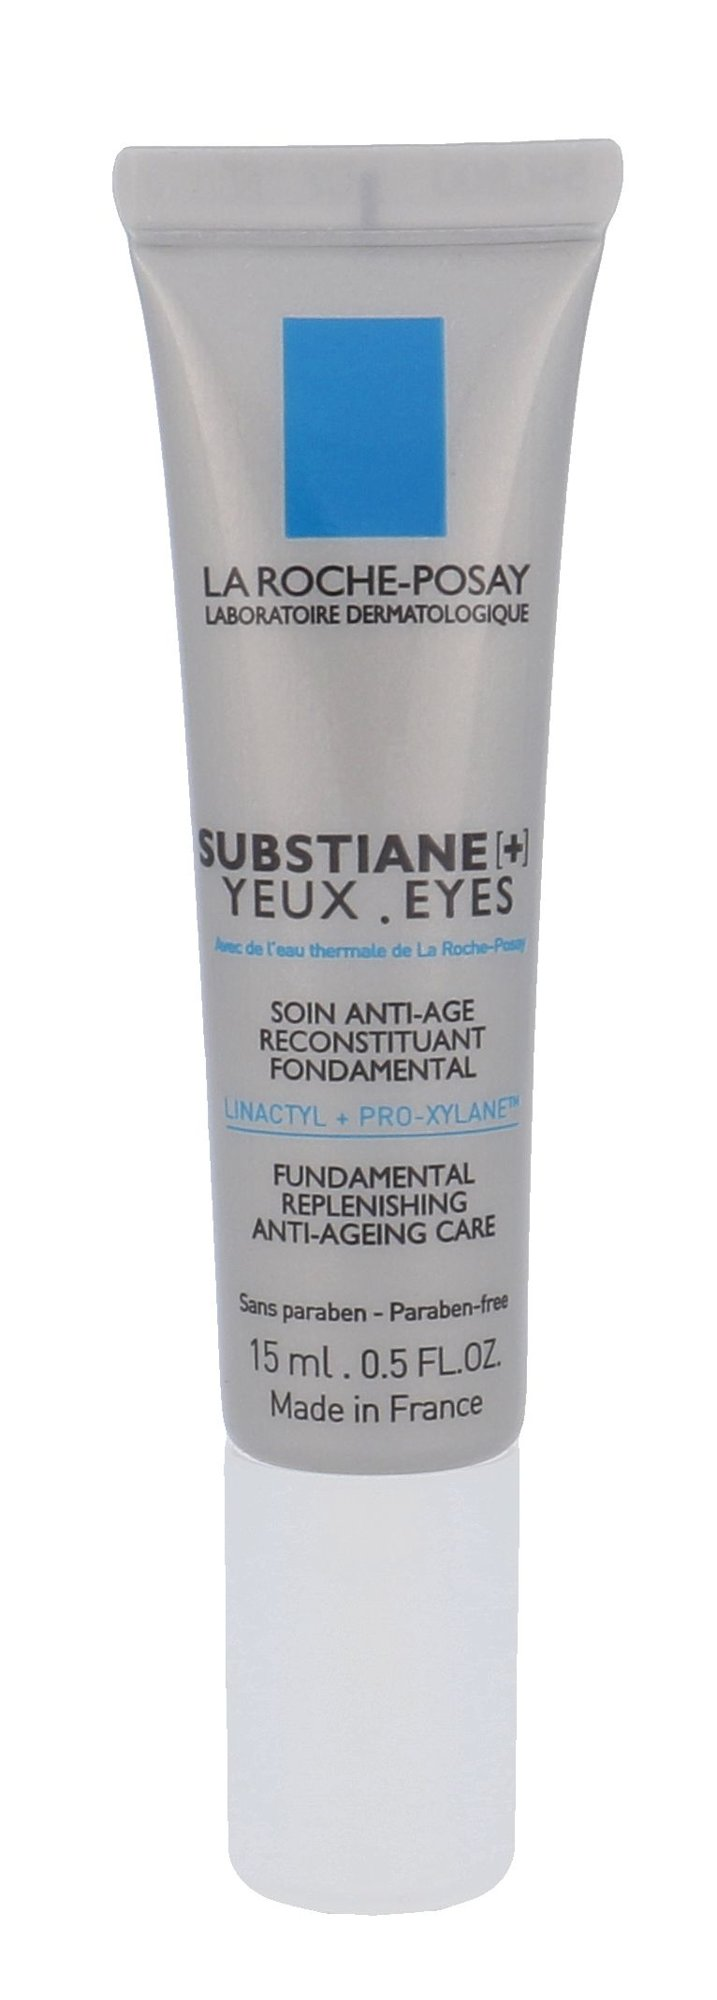 La Roche-Posay Substiane Eyes Anti-Ageing Care Cosmetic 15ml